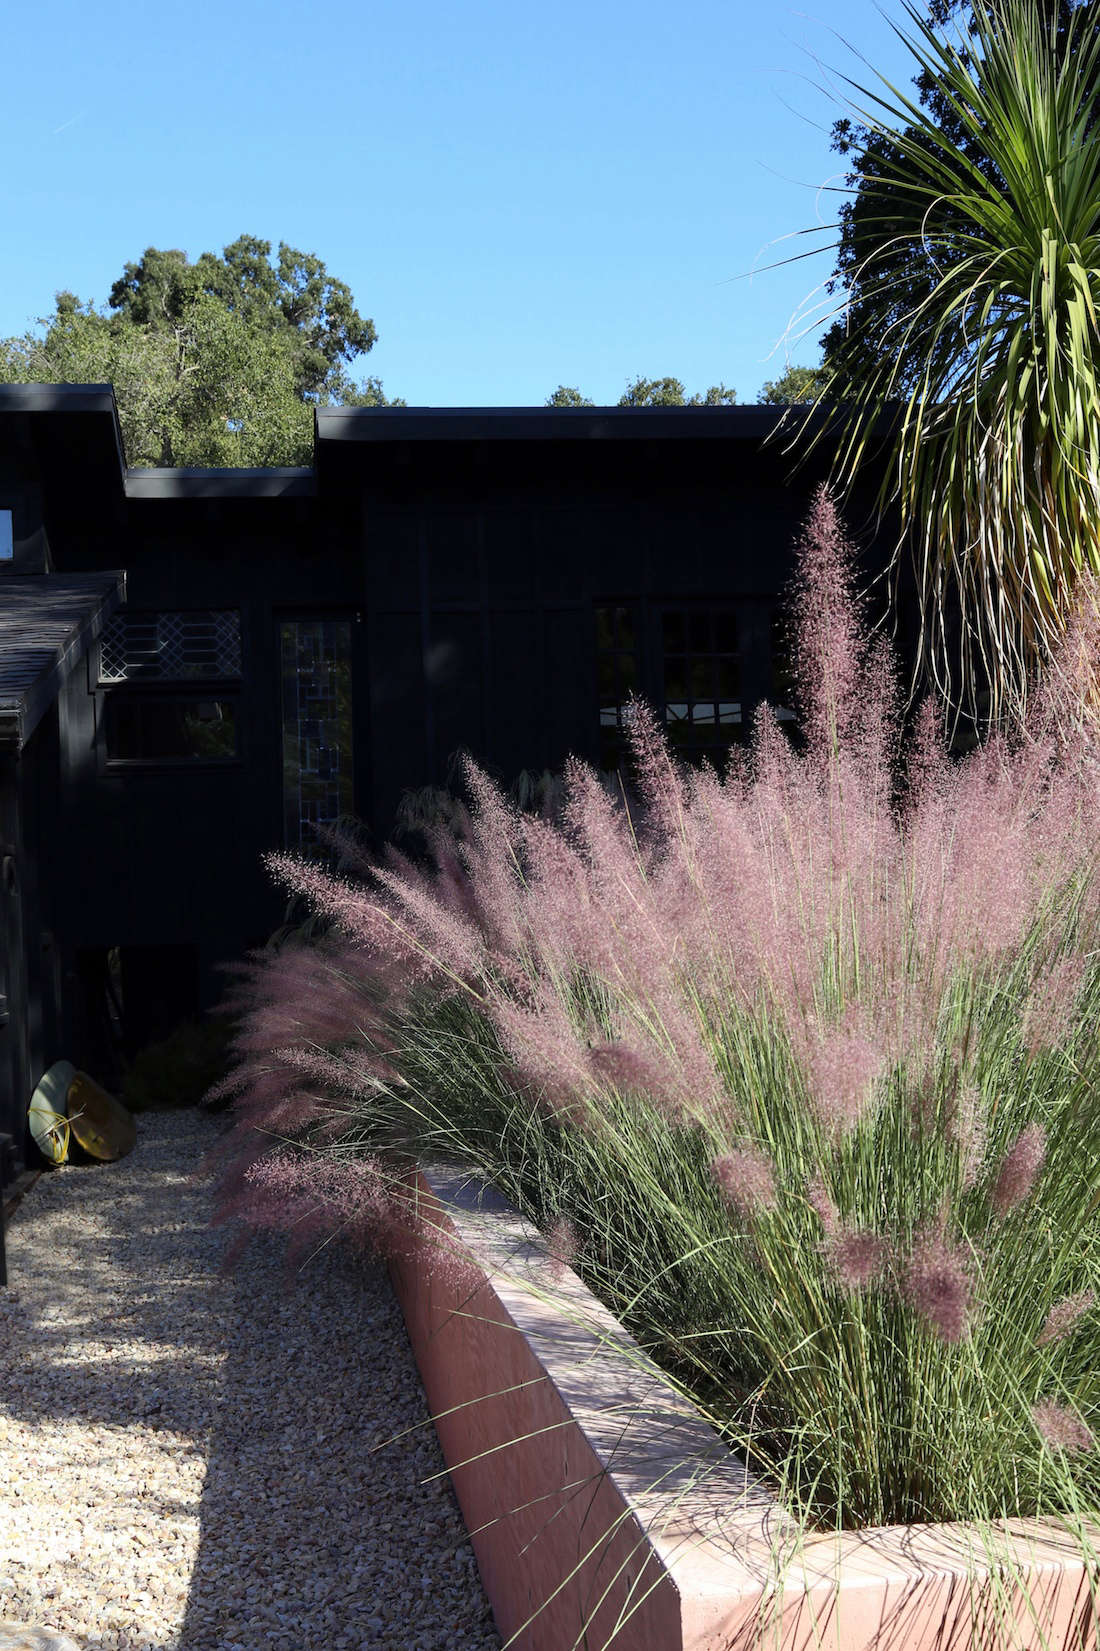 Pinkmuhlenbergia grass is the preeminent plant in the garden; it offers vibrant color during fall blooms.